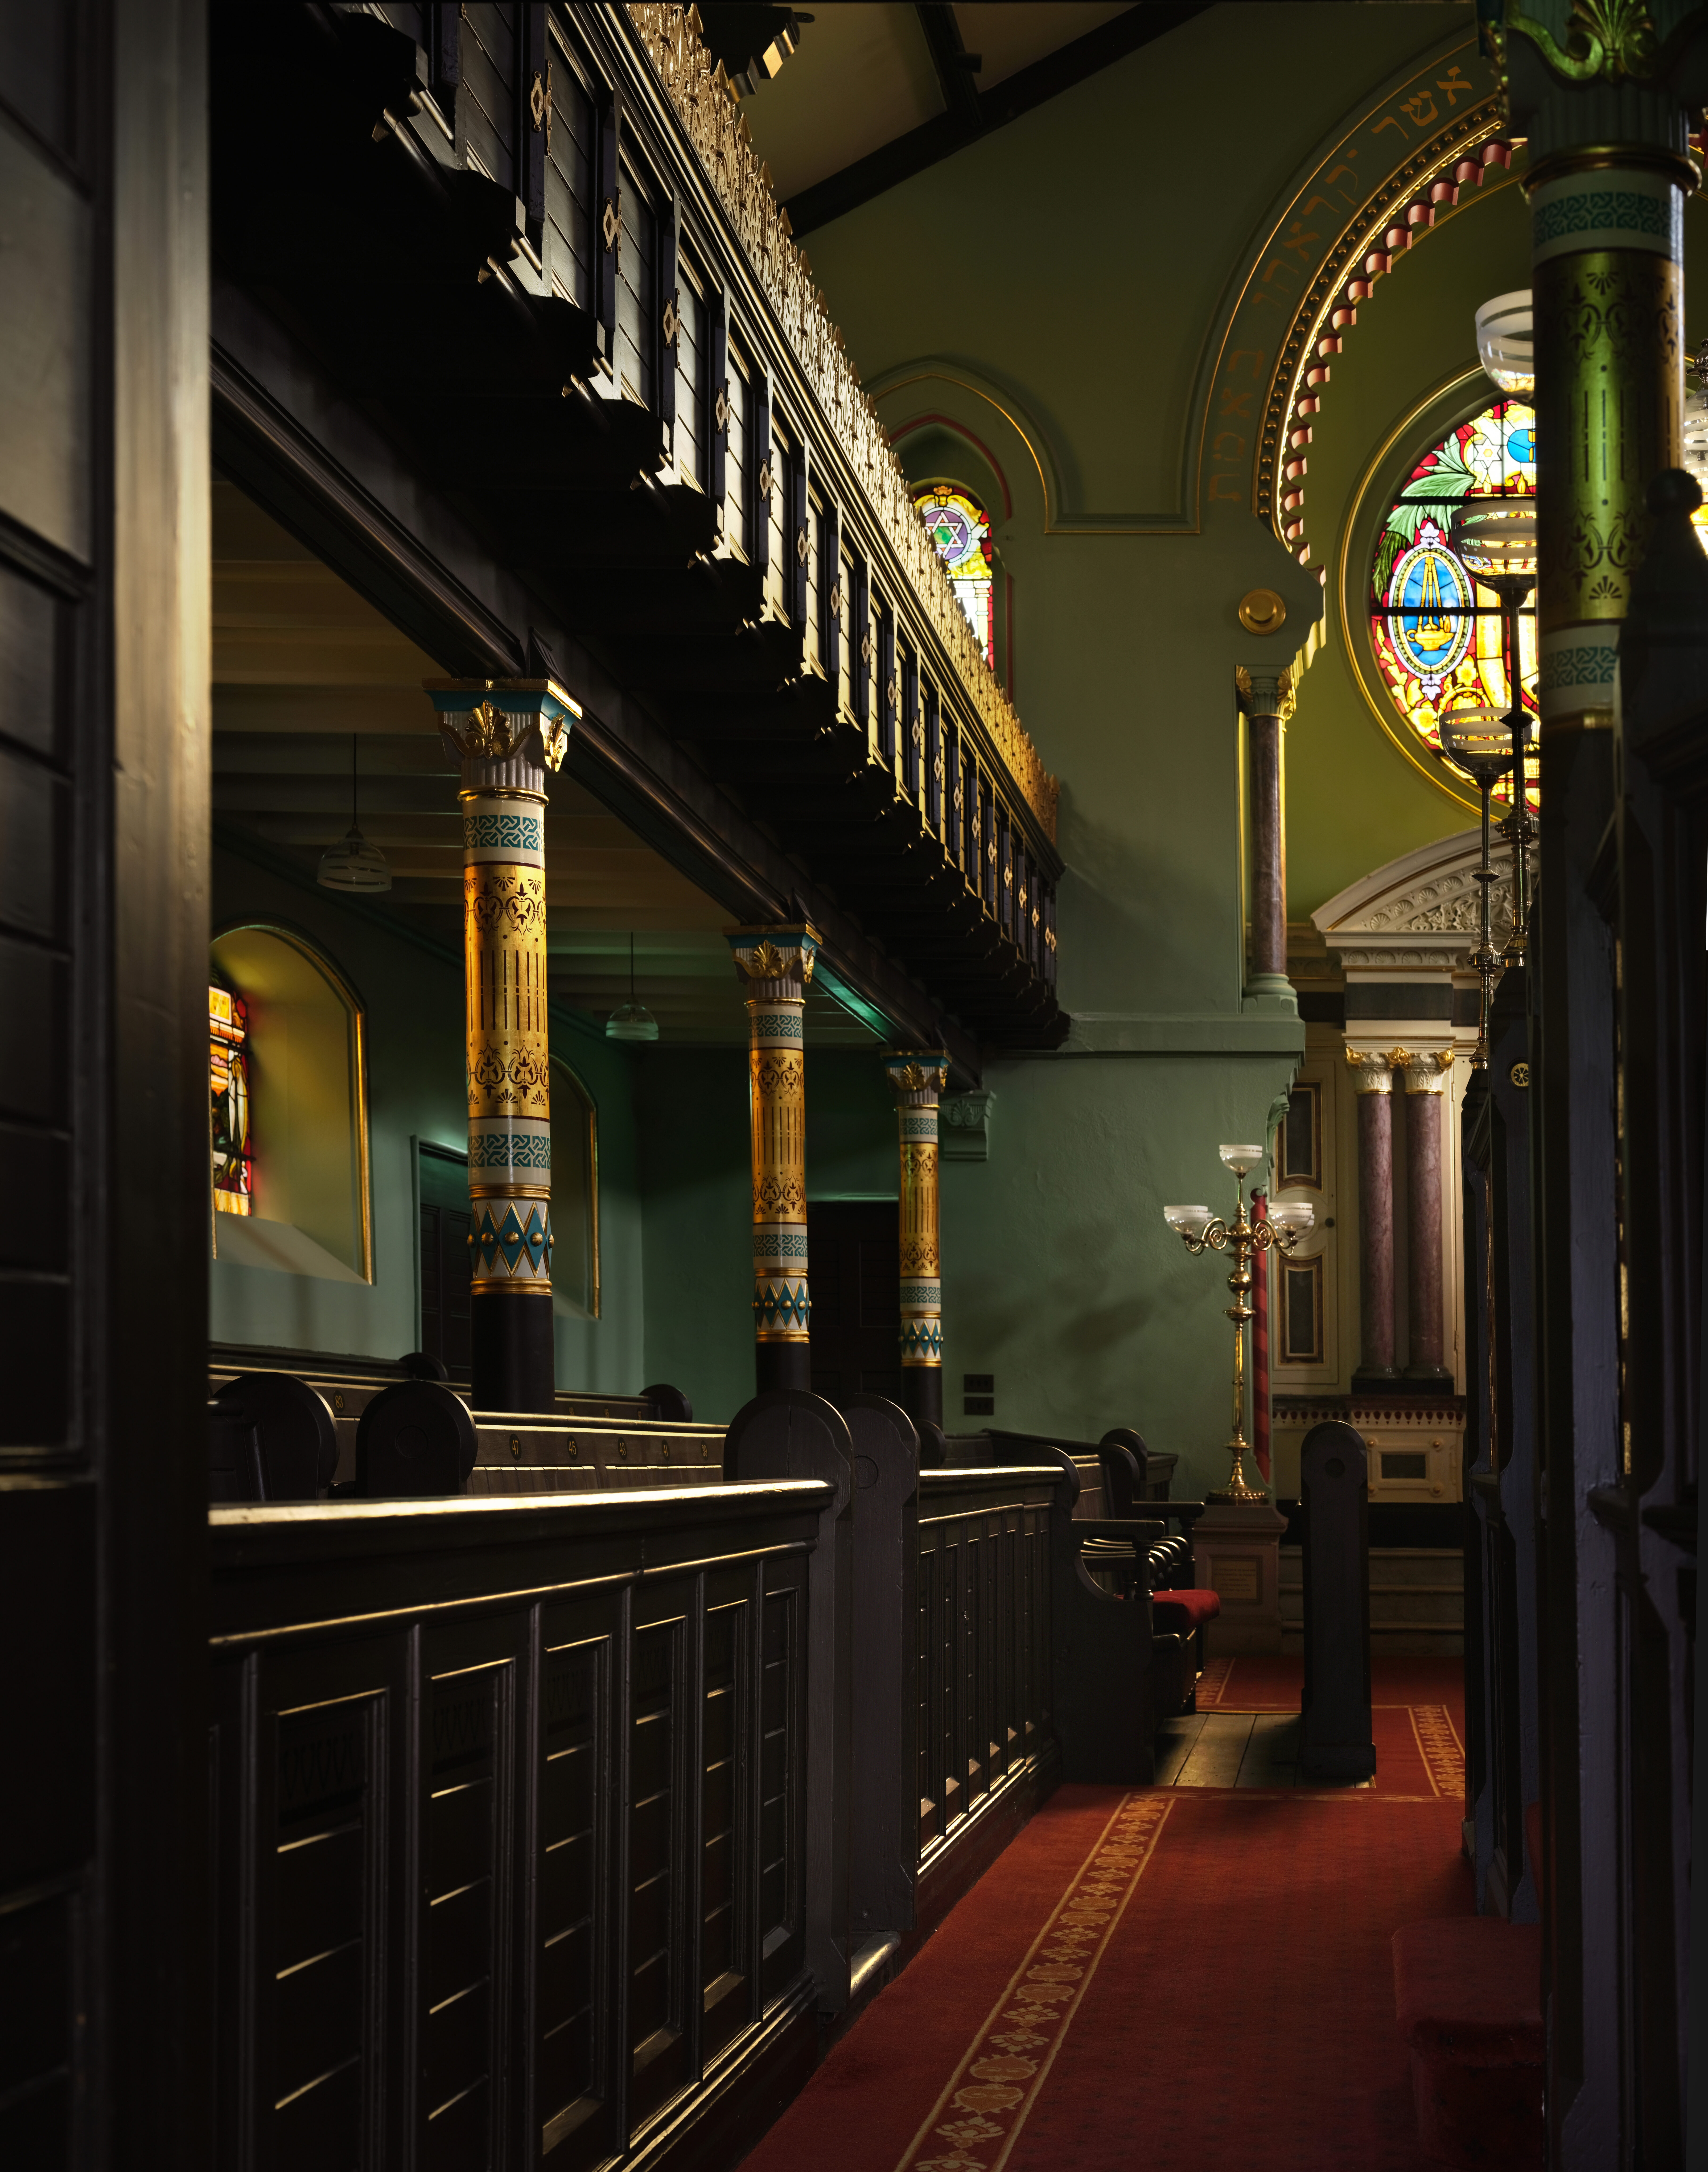 Philip Vile, Manchester Jewish Museum Synagogue, 2021